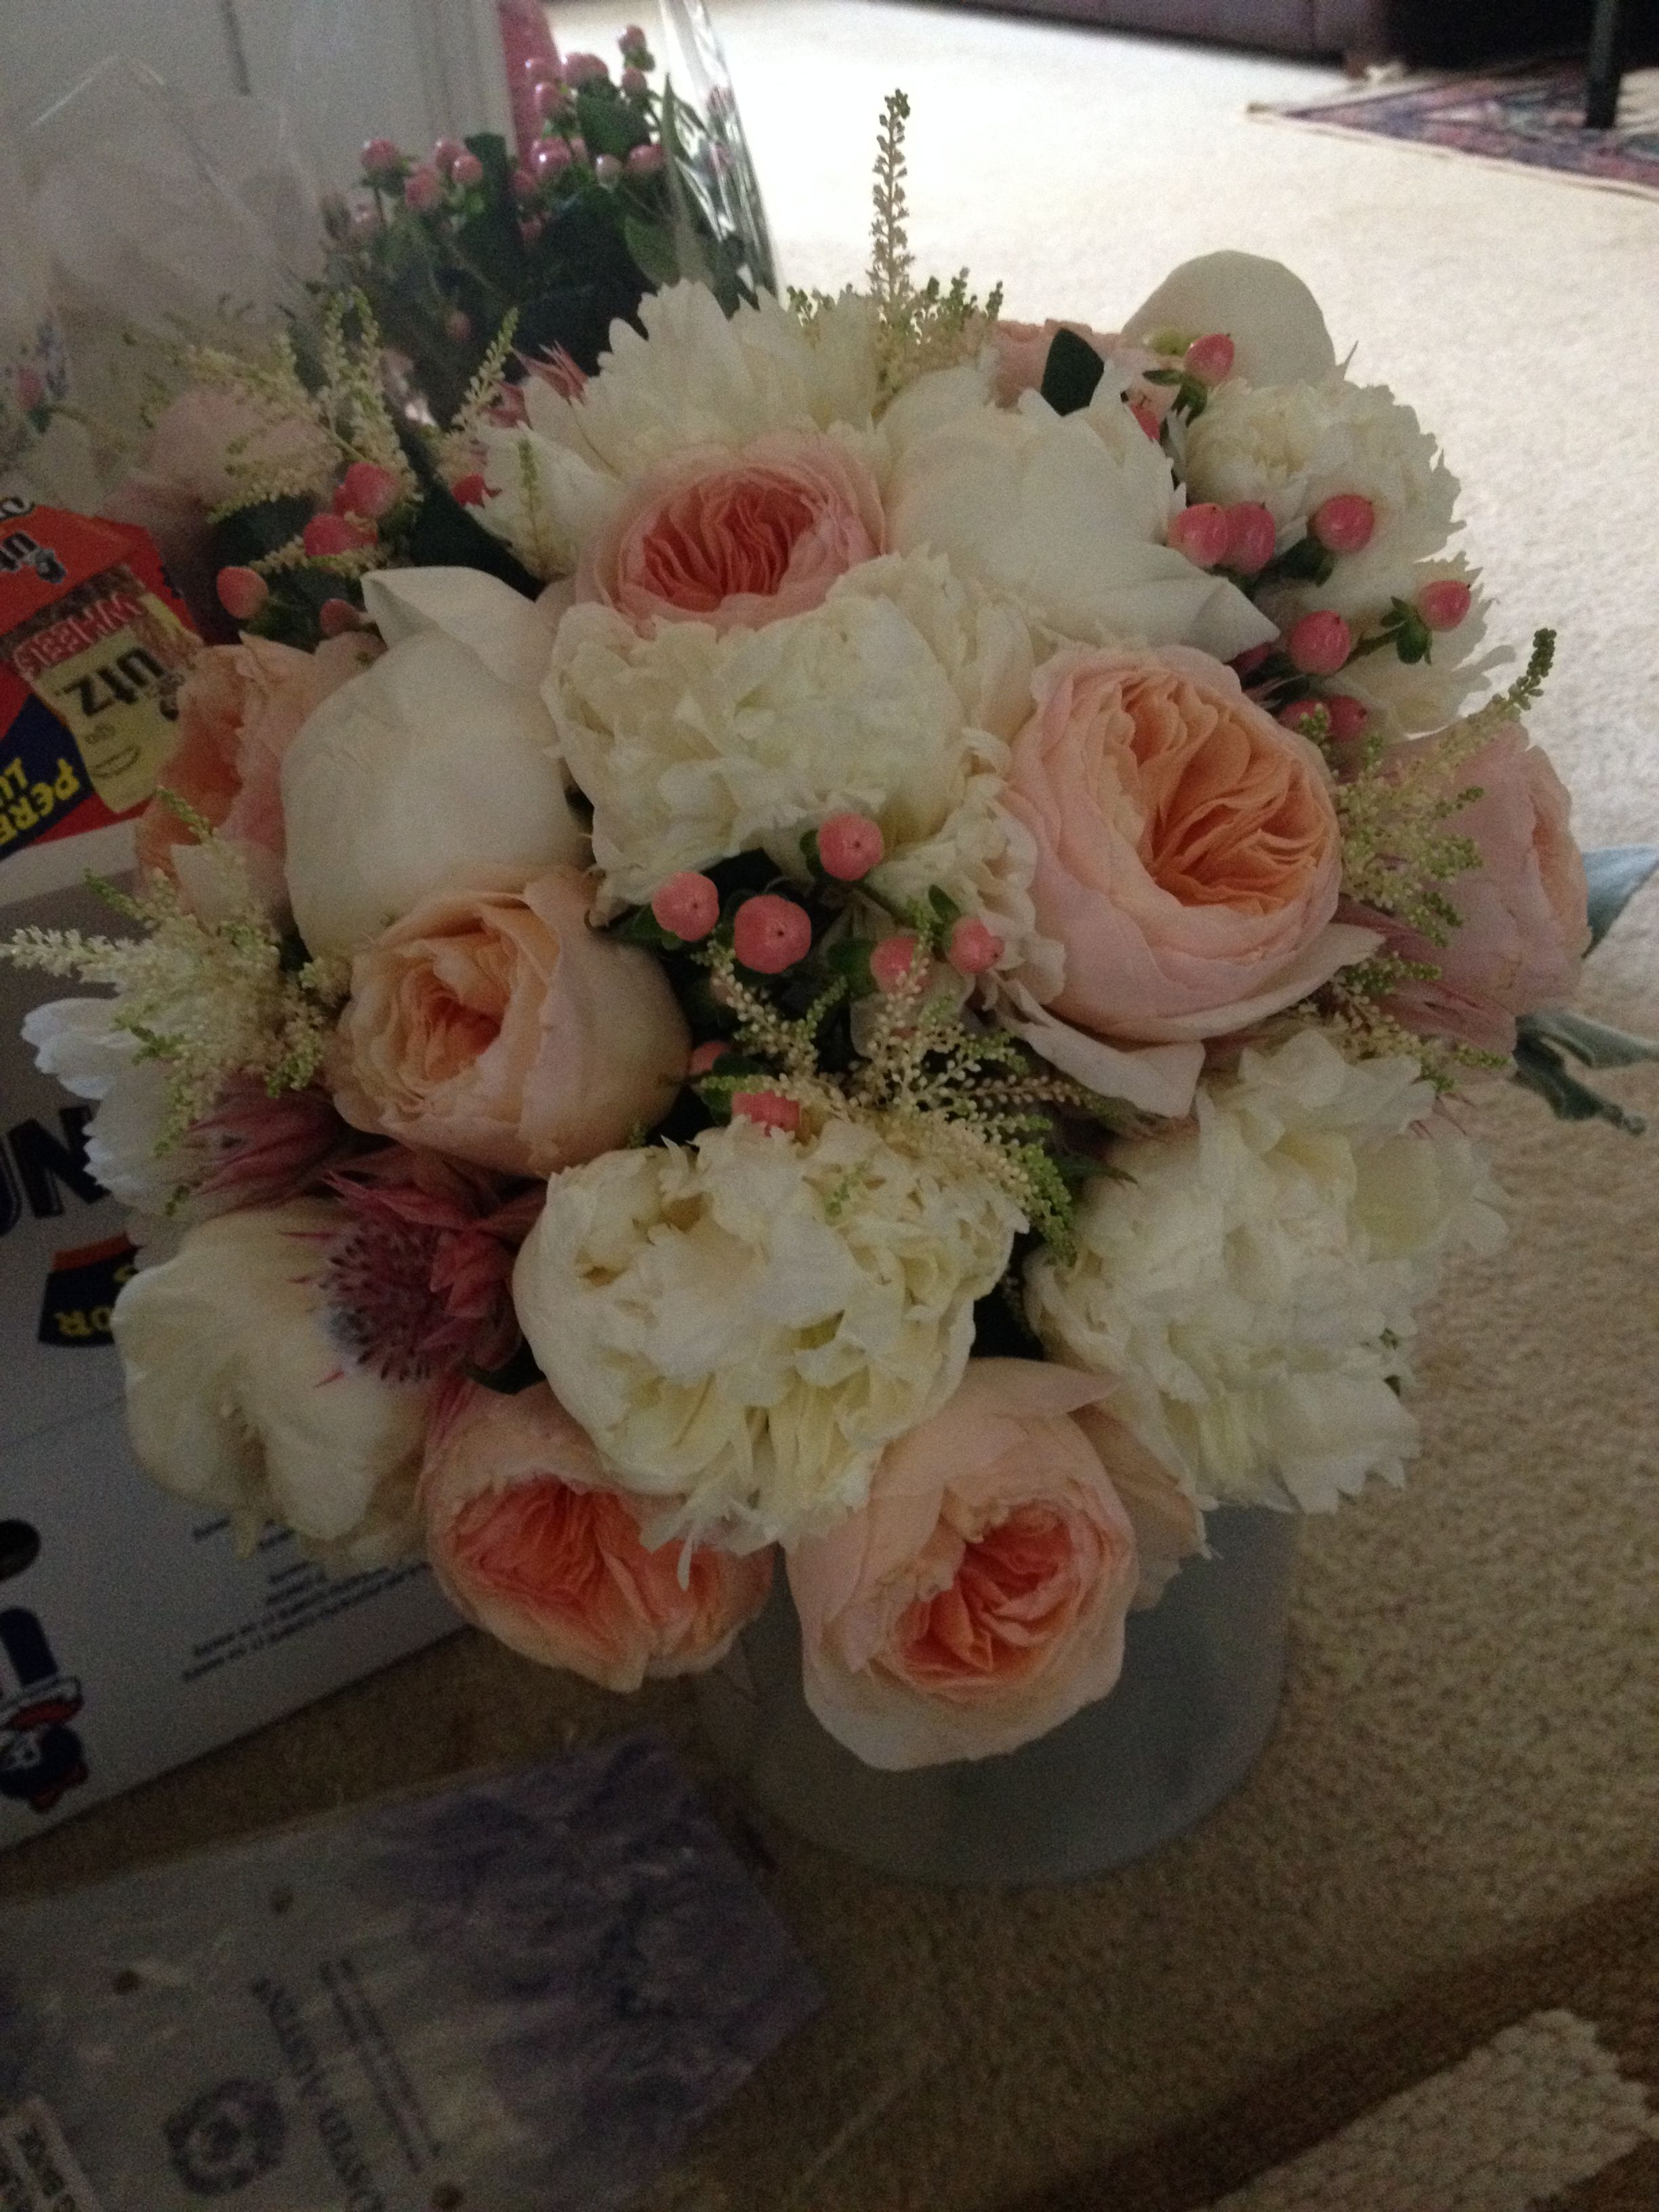 Home bulk roses peach roses - If You Used Sam S Club Costco Collections Or Bulk Flowers Please Share